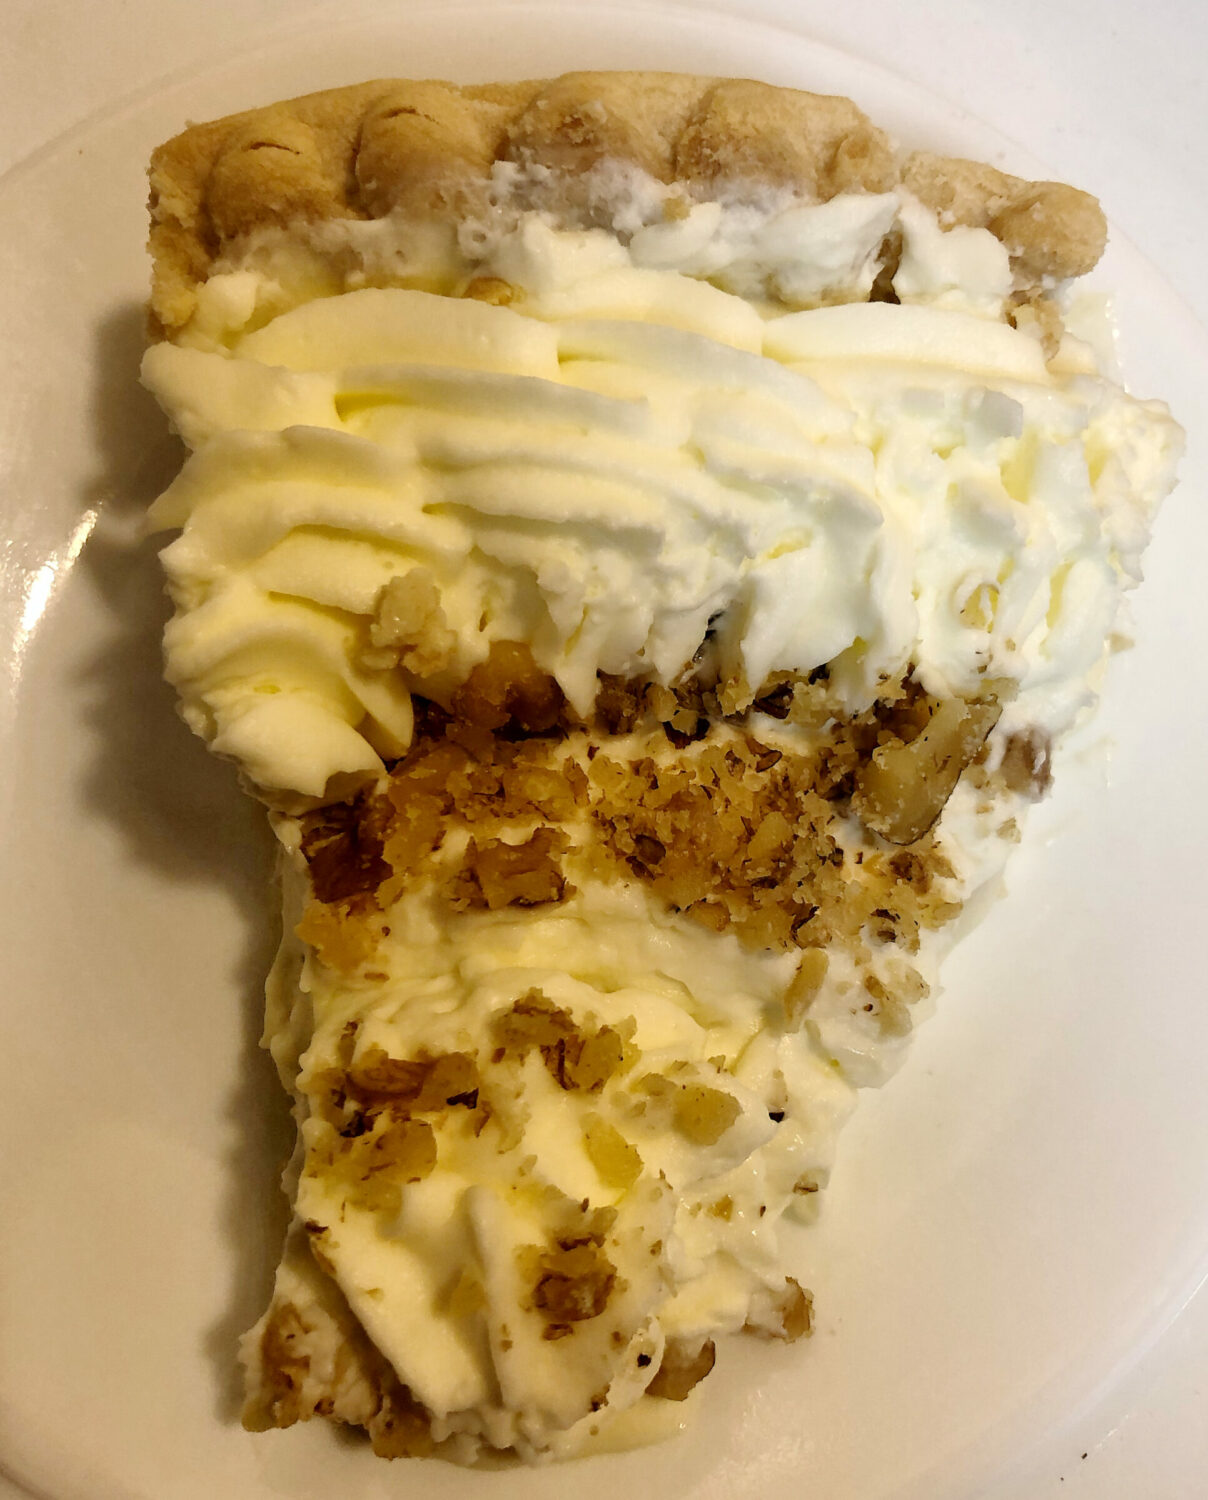 Banana Cream Pie with Whipping Cream and Chopped Pecans